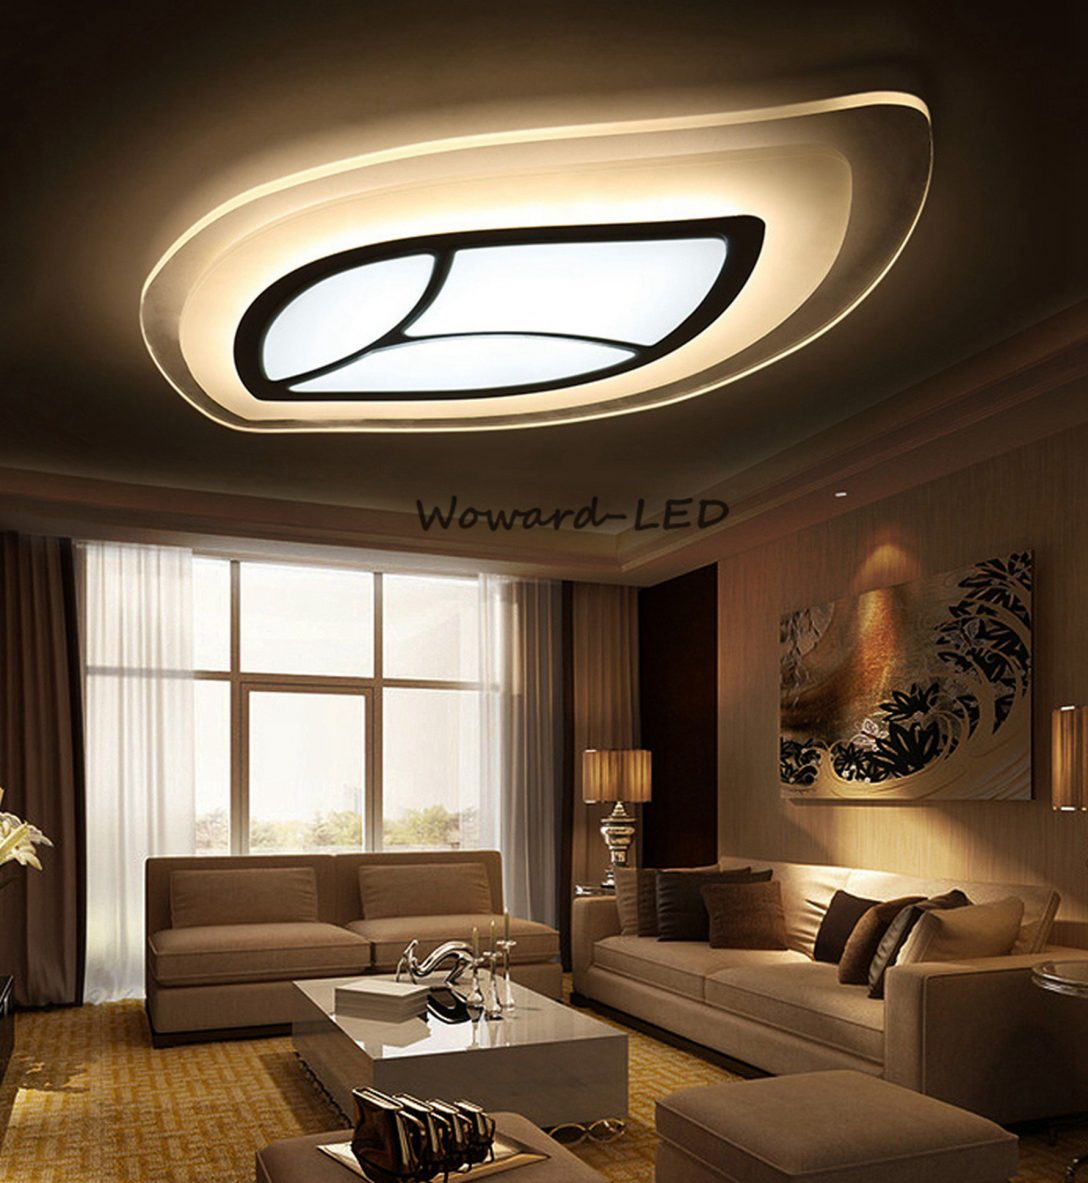 Large Size of Led Beleuchtung Wohnzimmer Planen Led Indirekte Beleuchtung Fürs Wohnzimmer Led Leuchten Für Wohnzimmer Led Beleuchtung Im Wohnzimmer Wohnzimmer Led Beleuchtung Wohnzimmer